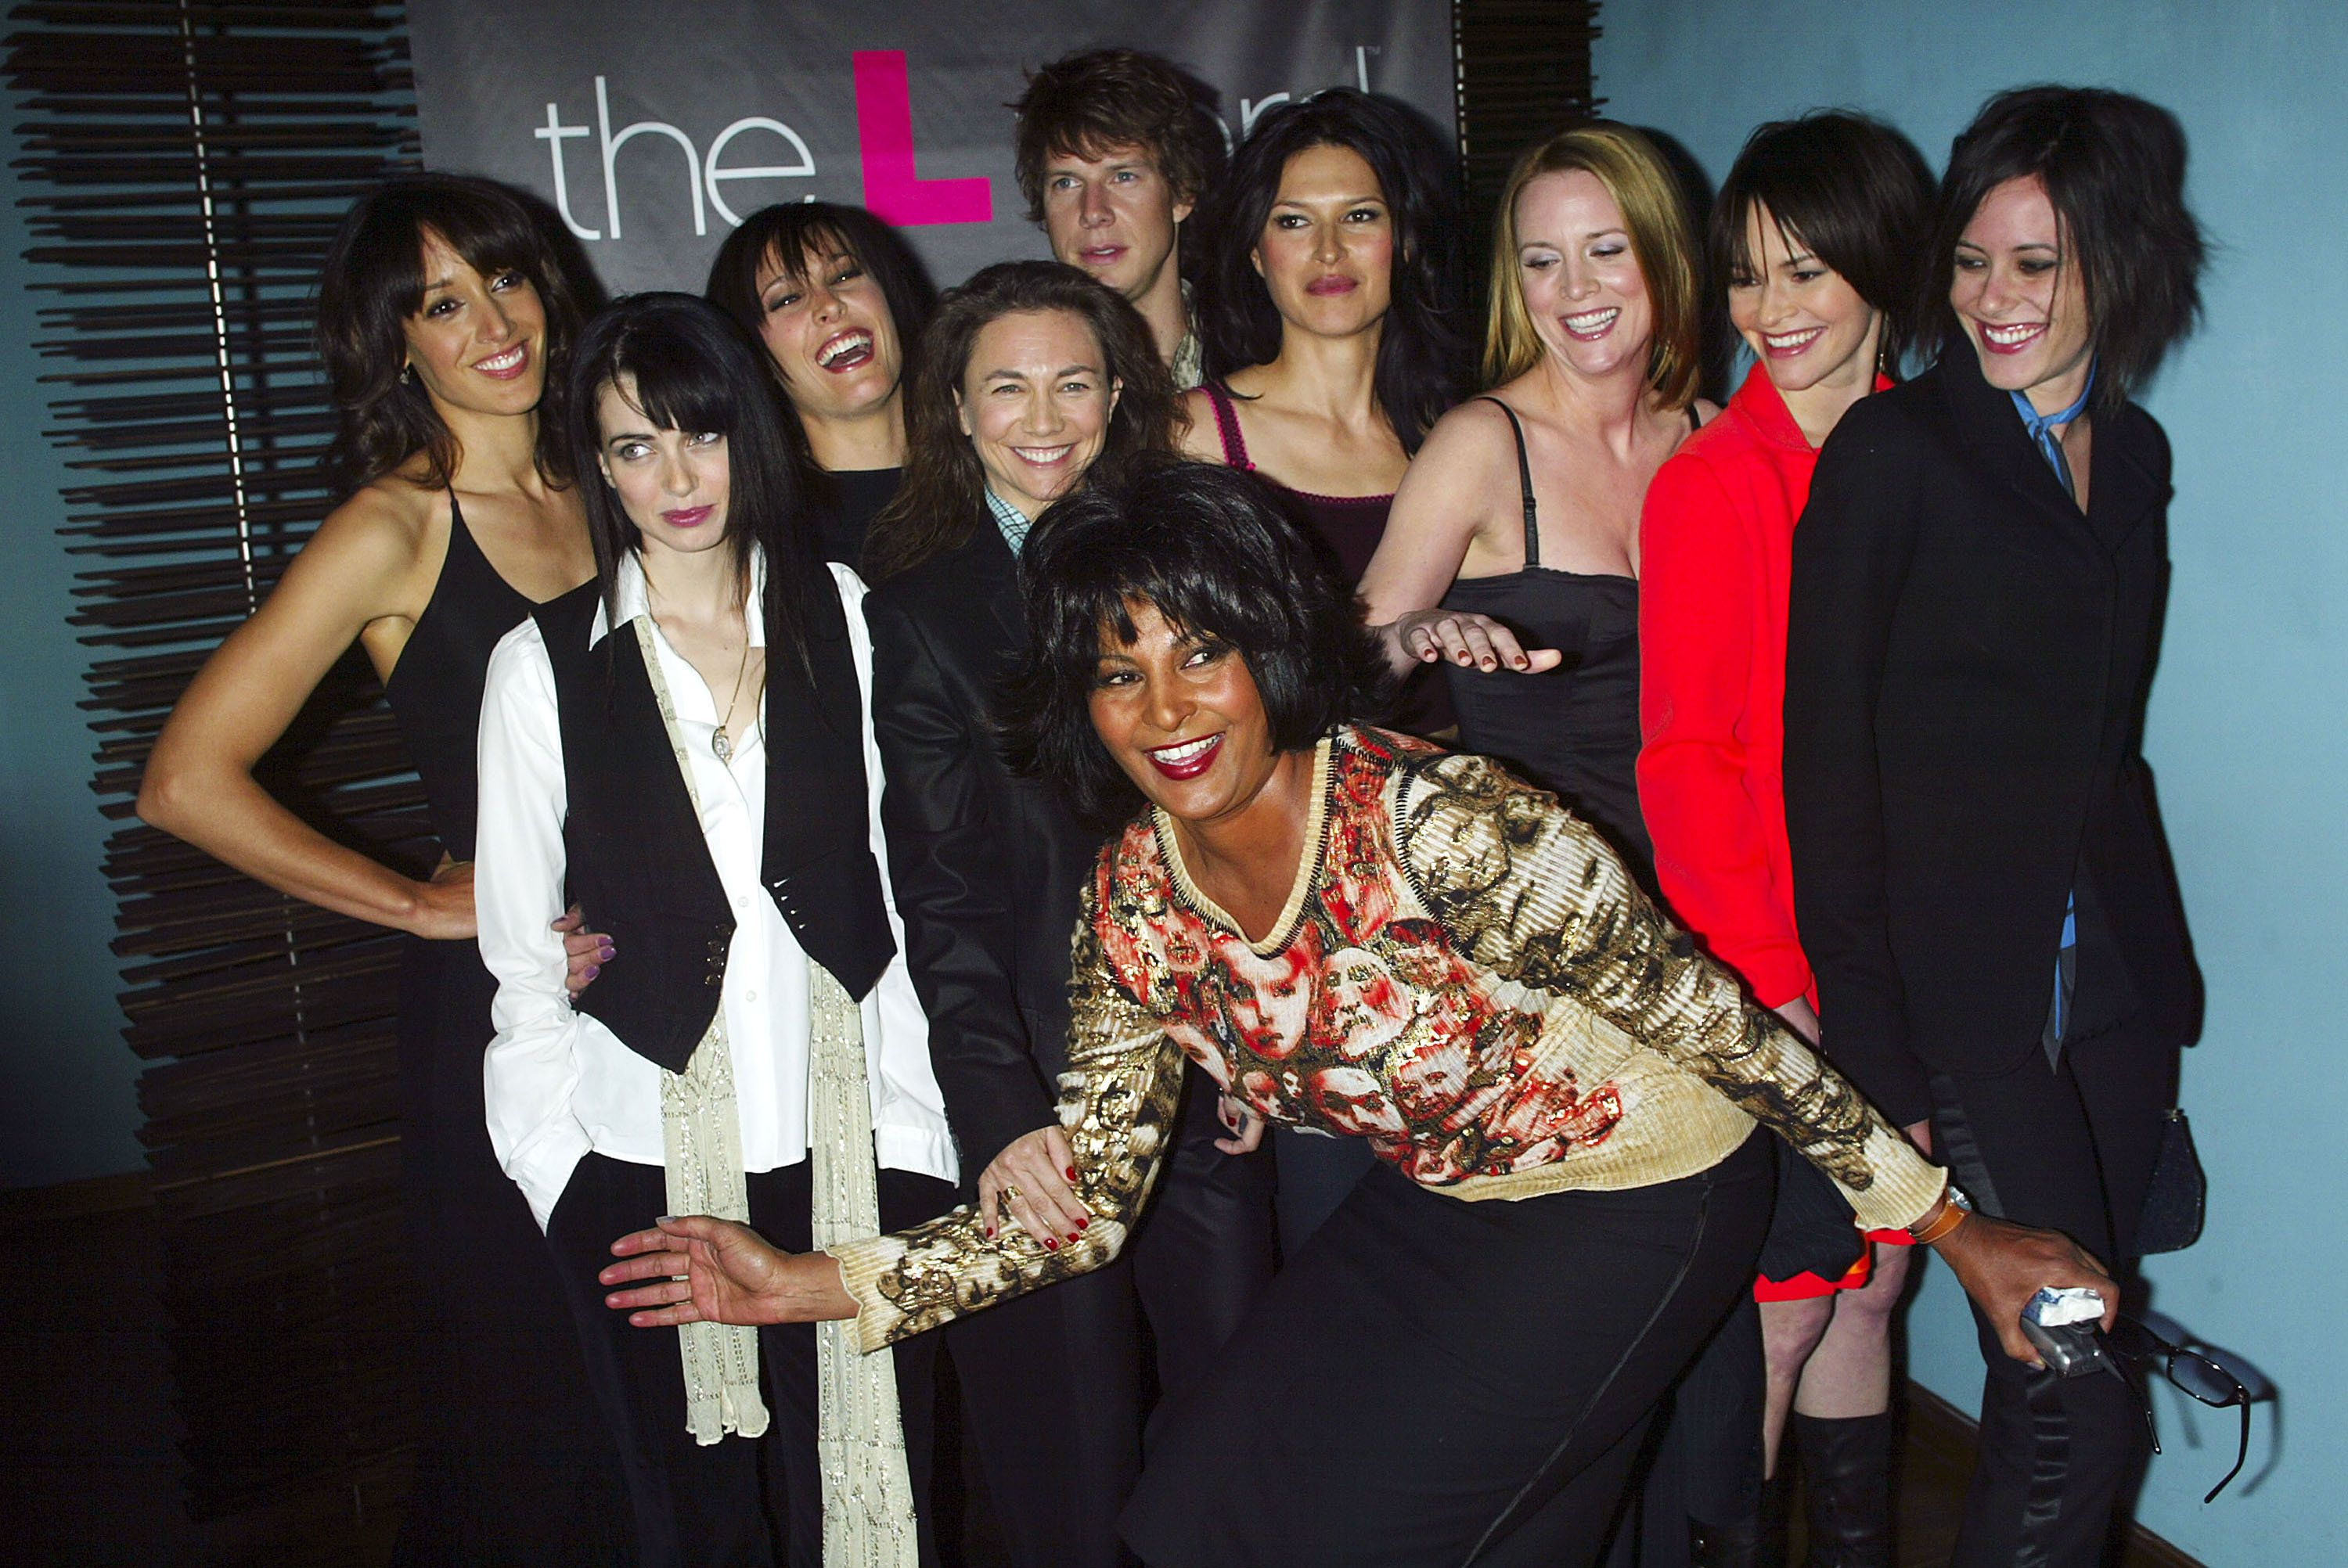 'The L Word' Sequel Series Officially Coming to Showtime